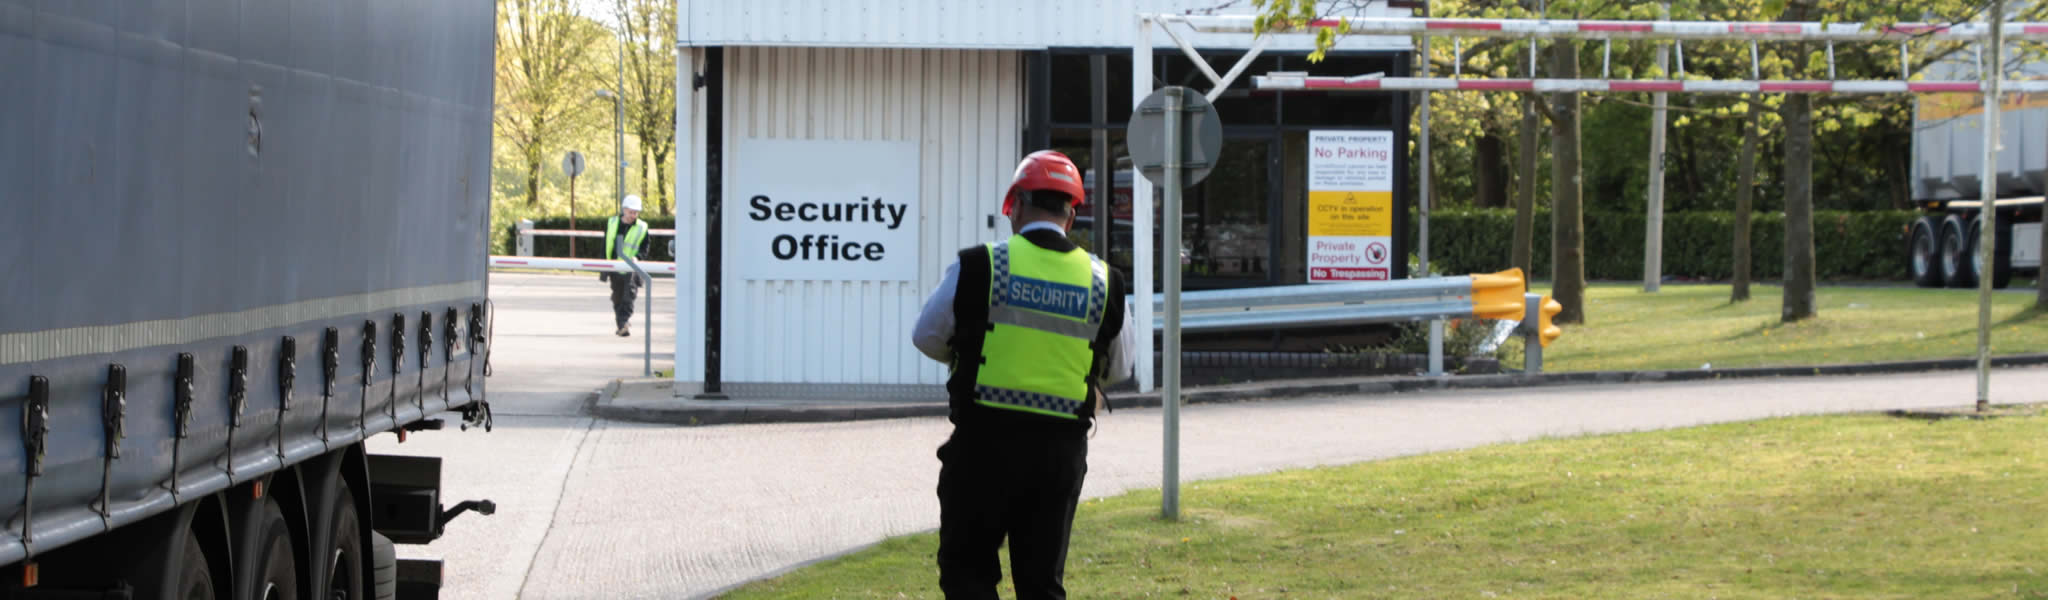 Gatehouse Security / Security Company in Manchester